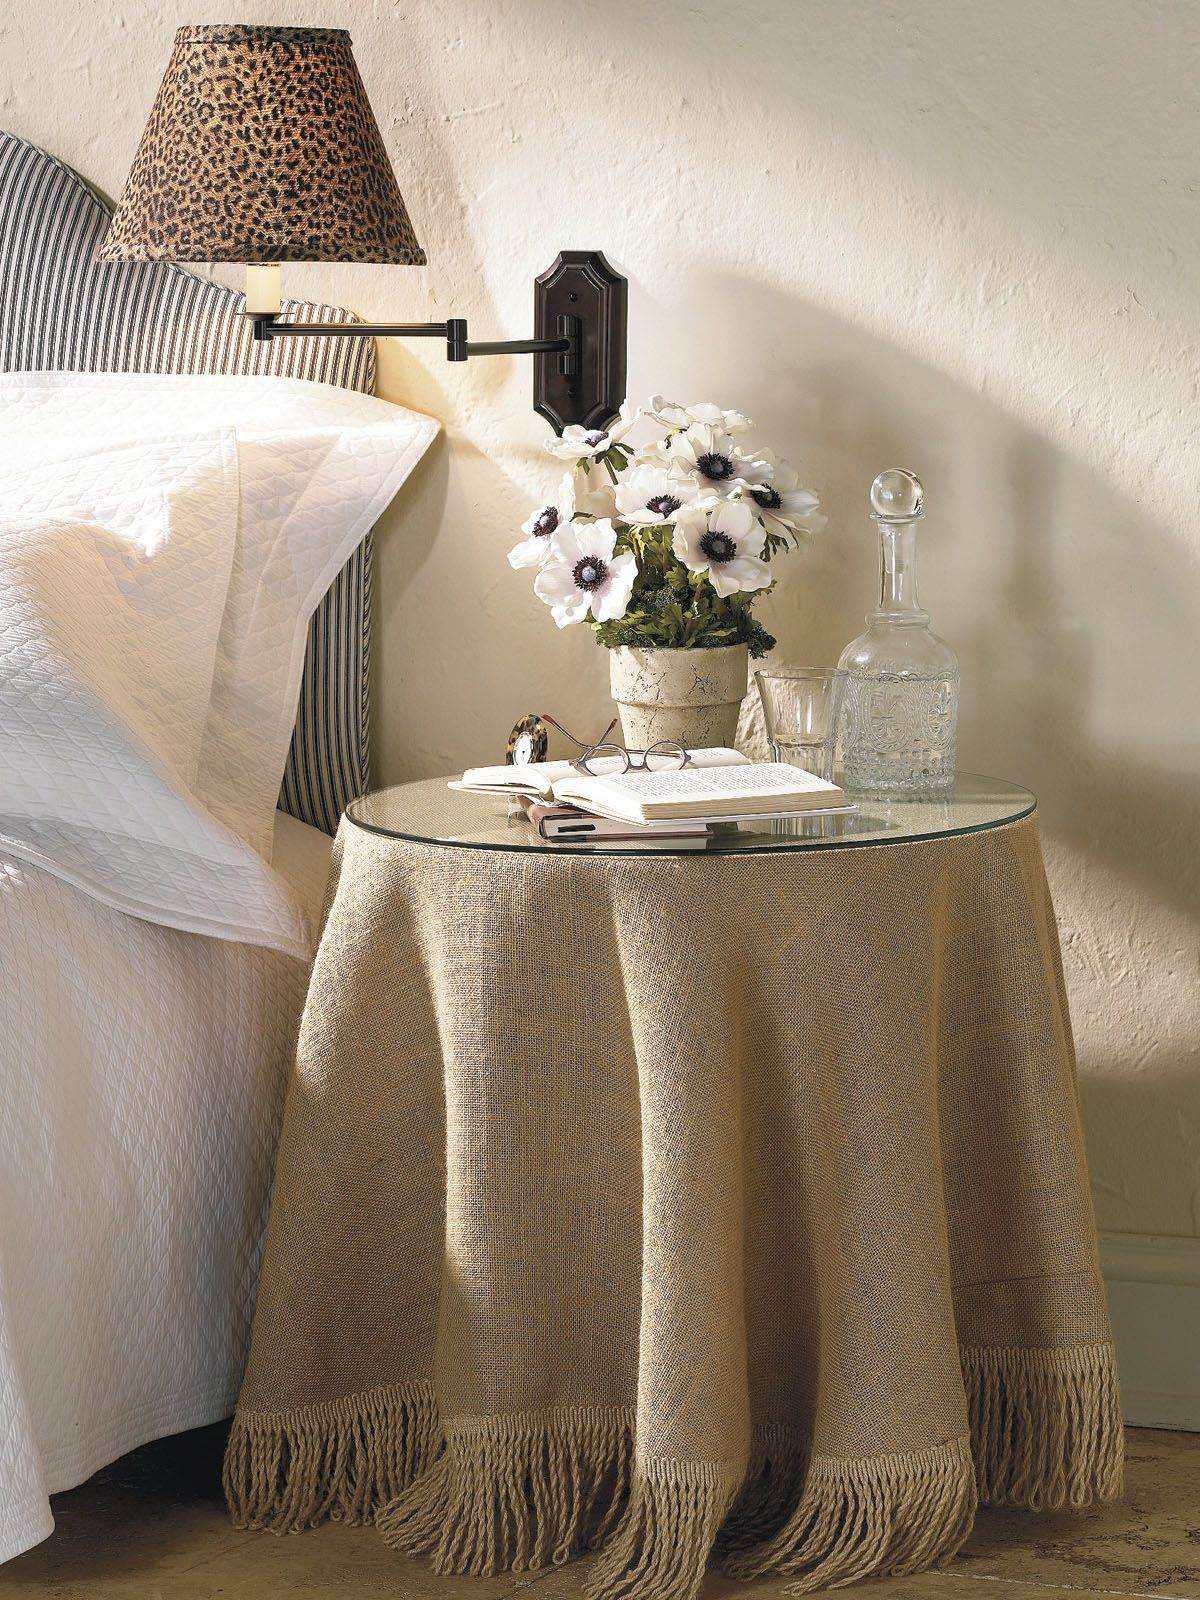 Round nightstand table cloths httpargharts pinterest round nightstand table cloths watchthetrailerfo